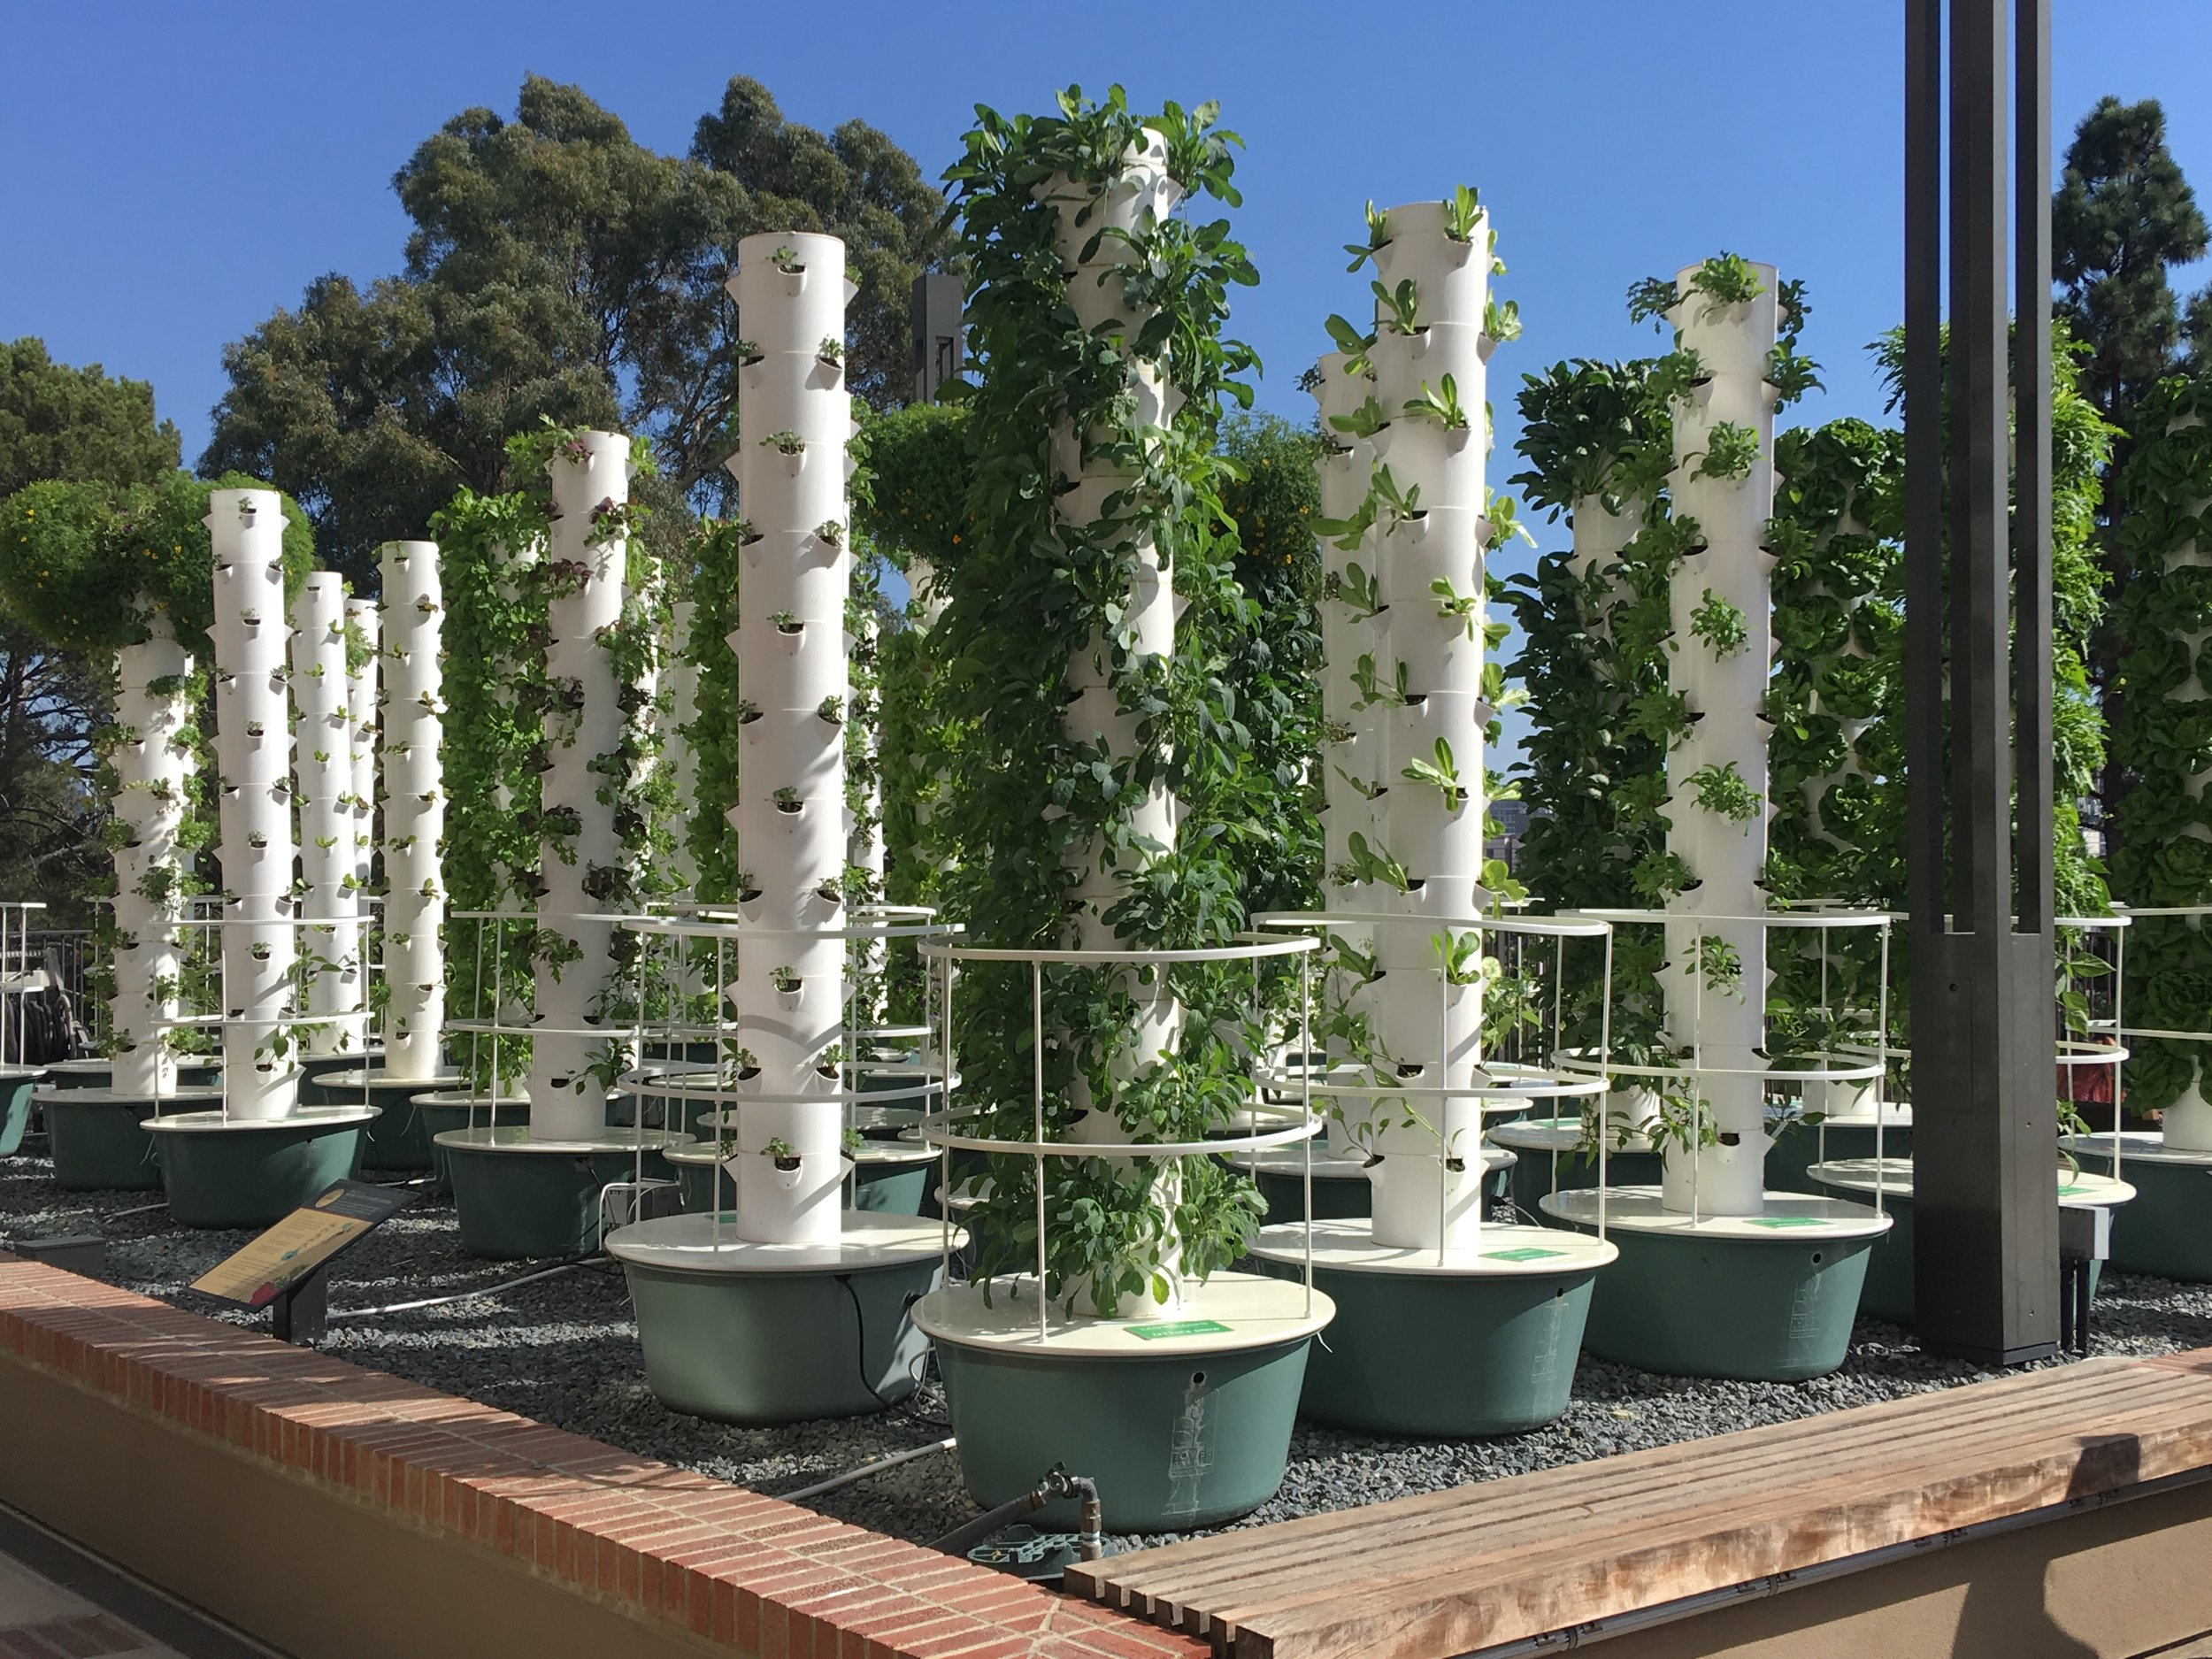 Living Lab - Food, water and energy are critical elements of the fresh food circular economy and urban sustainability. Vertical farming is all about delivering locally grown safe food using the least amount of fresh water, while reducing its energy footprint with innovative technological advances. The INFEWS program in collaboration with Vertical Green Technologies plans to build a vertical farm on campus.